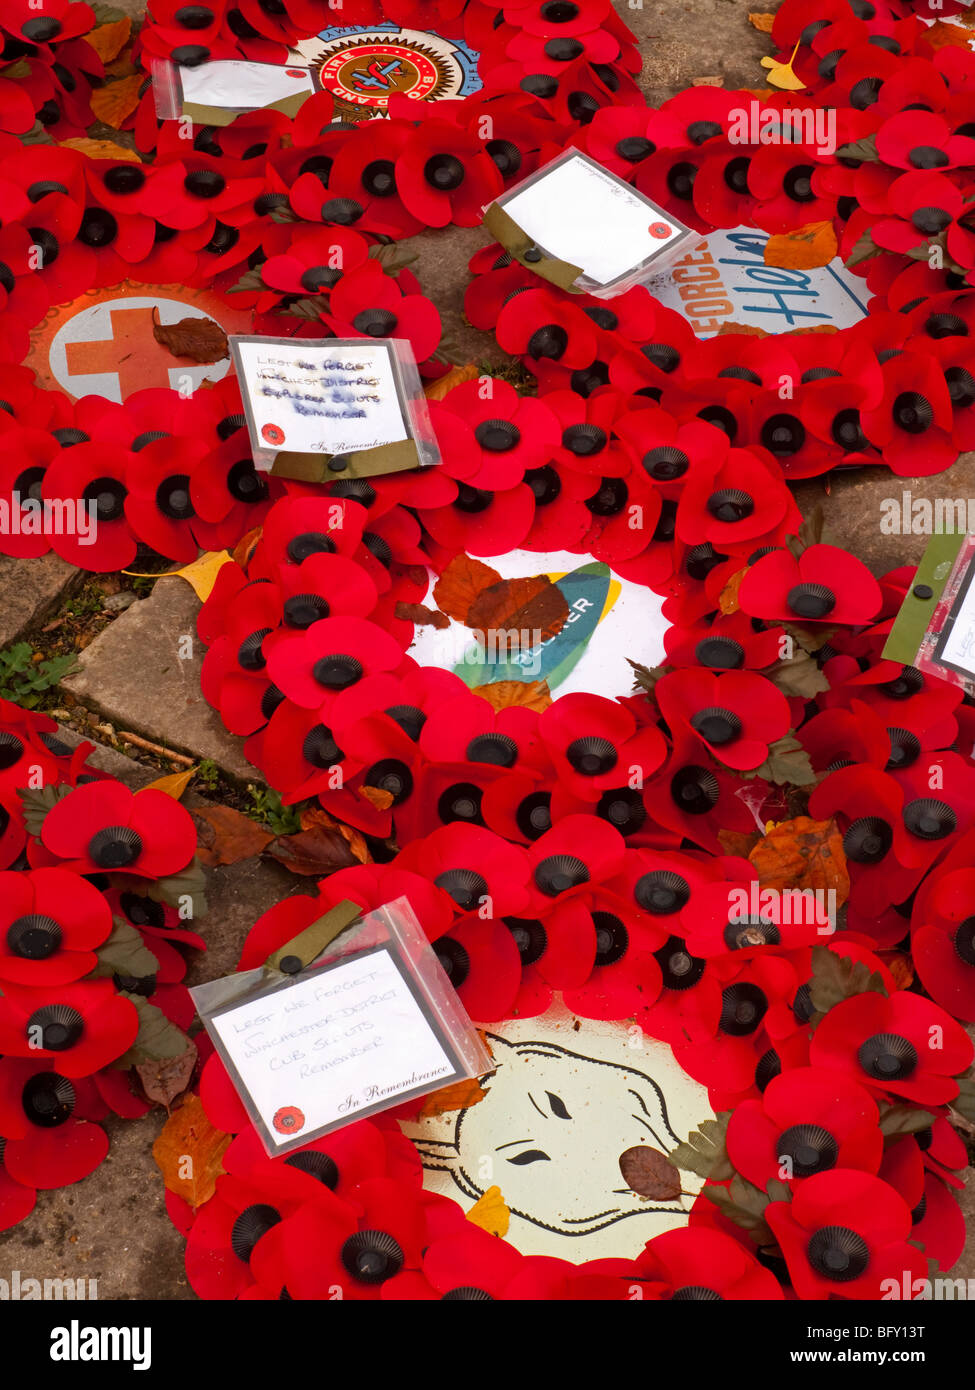 Detail of poppy wreathes to commemorate fallen service personnel on Remembrance Sunday in November in the UK - Stock Image